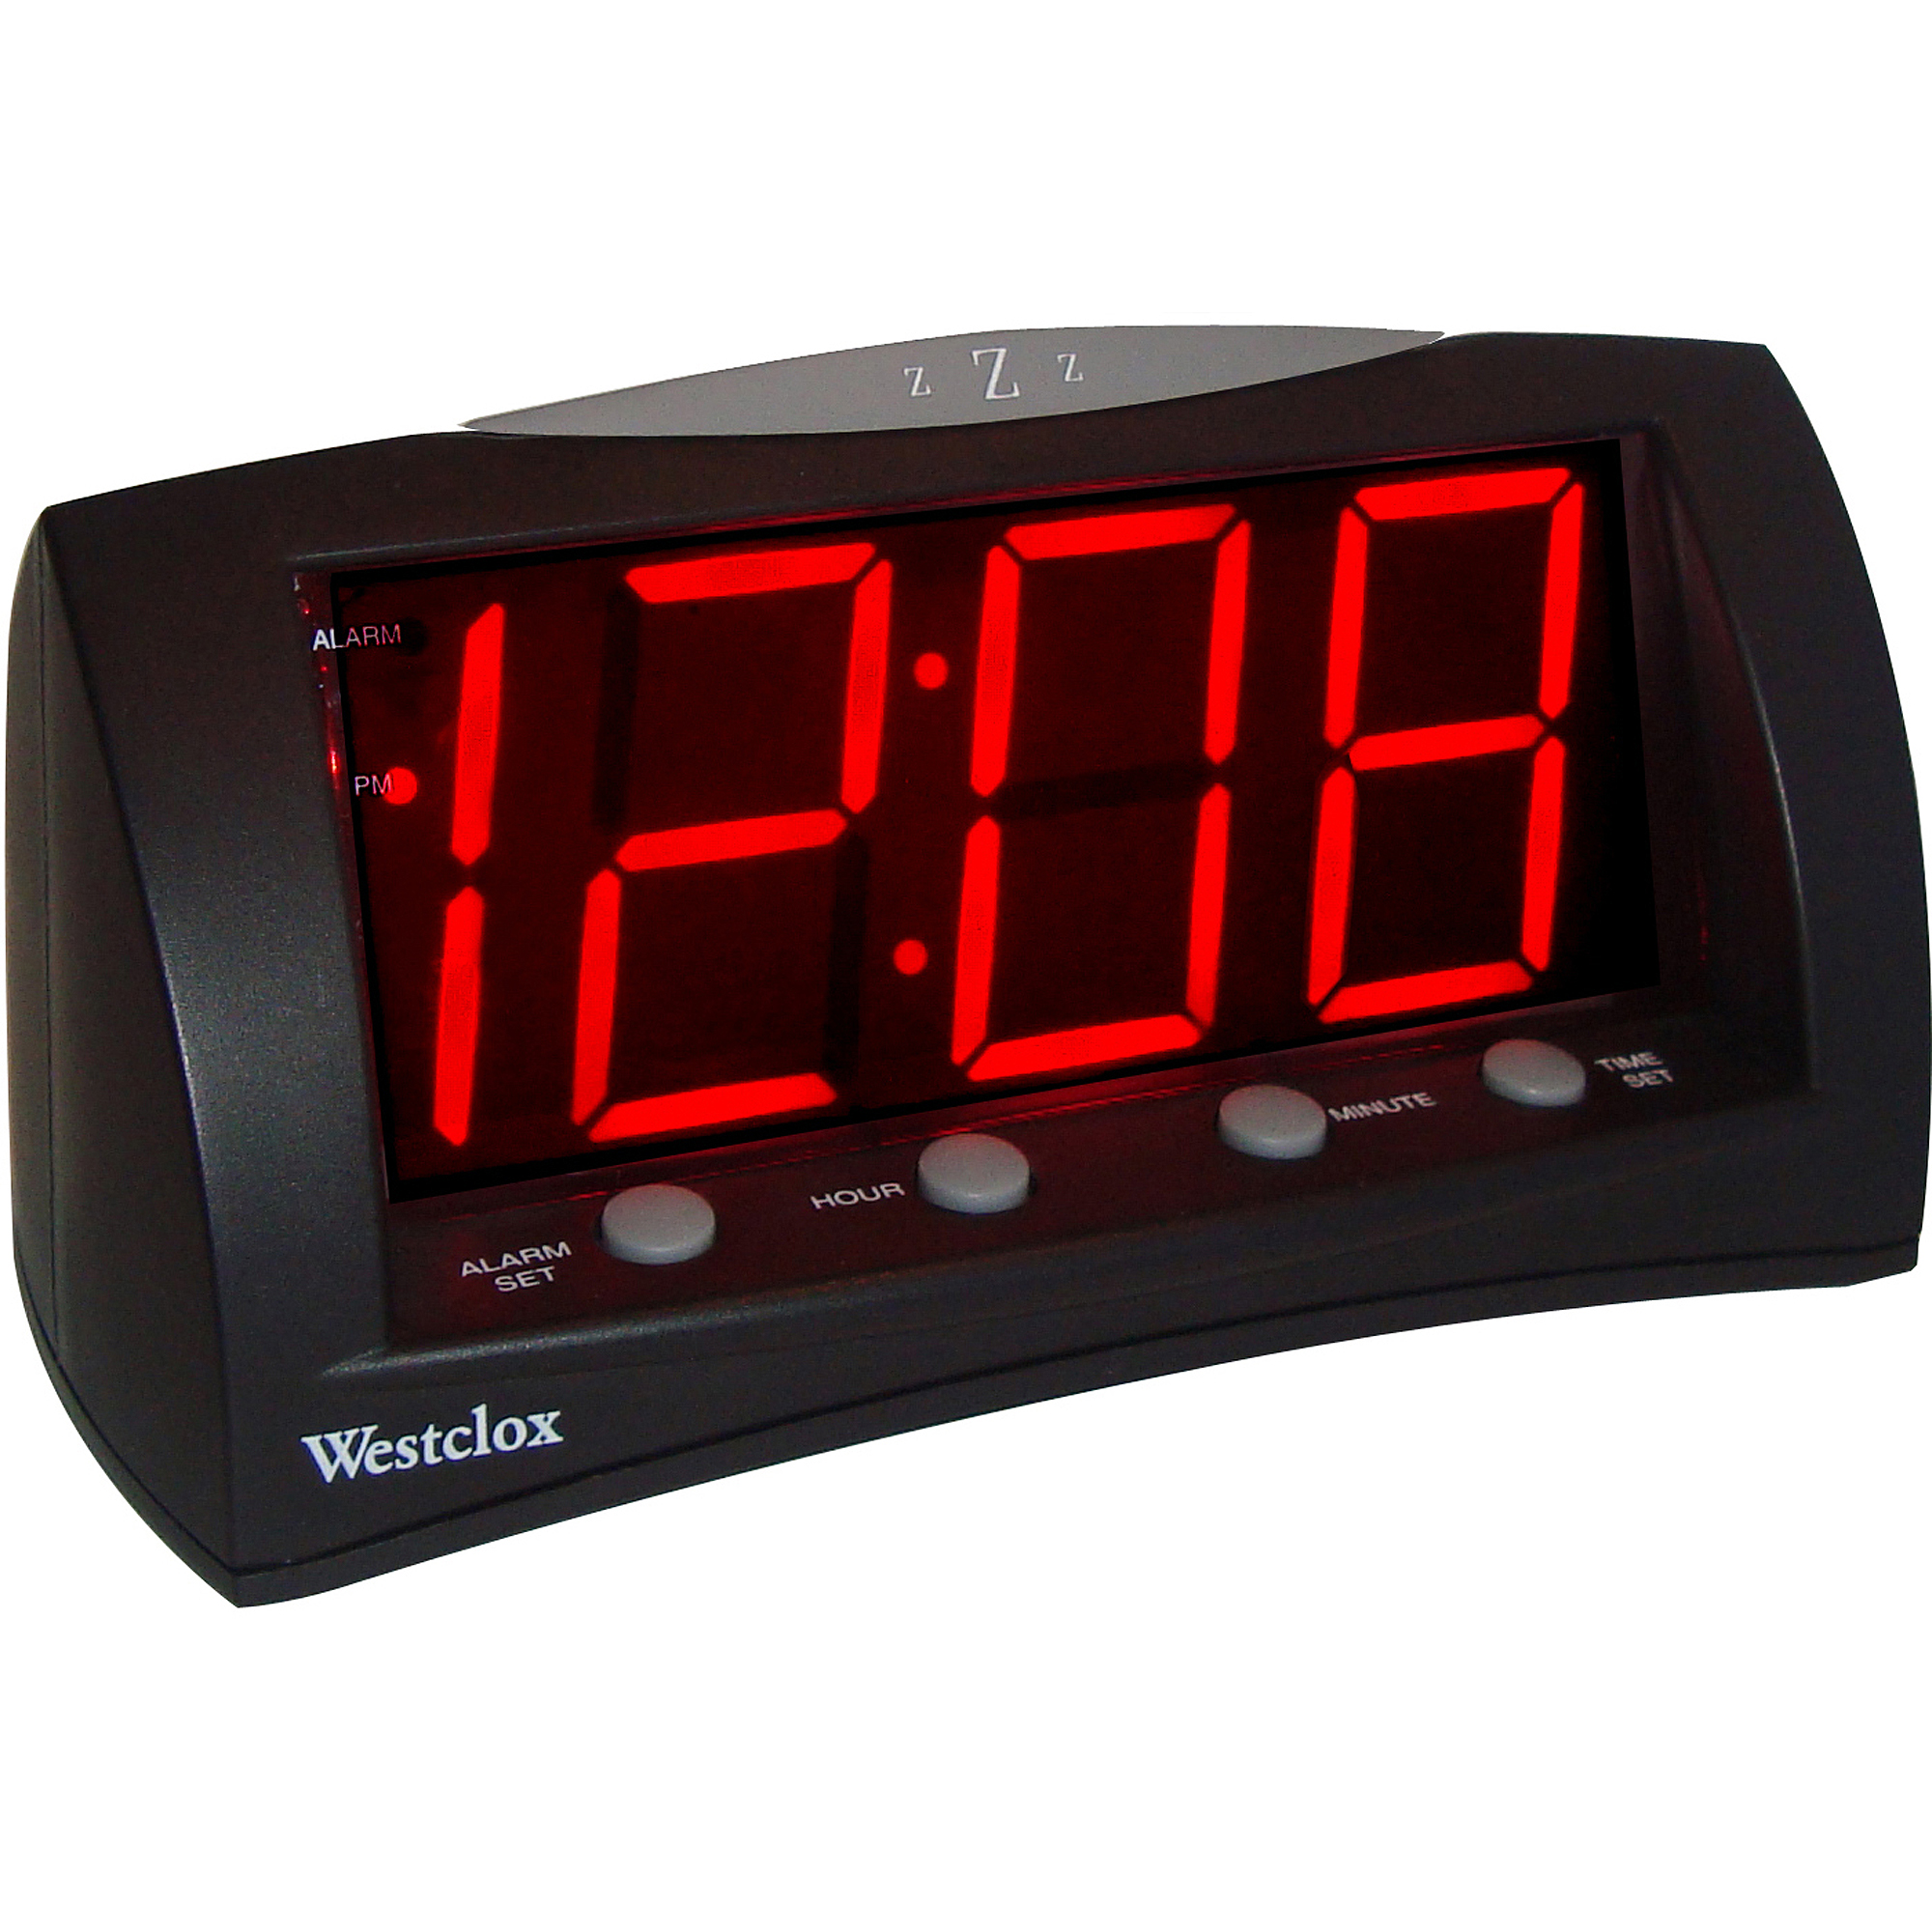 westclox extra large red led display digital electric alarm clock with snooze ebay. Black Bedroom Furniture Sets. Home Design Ideas